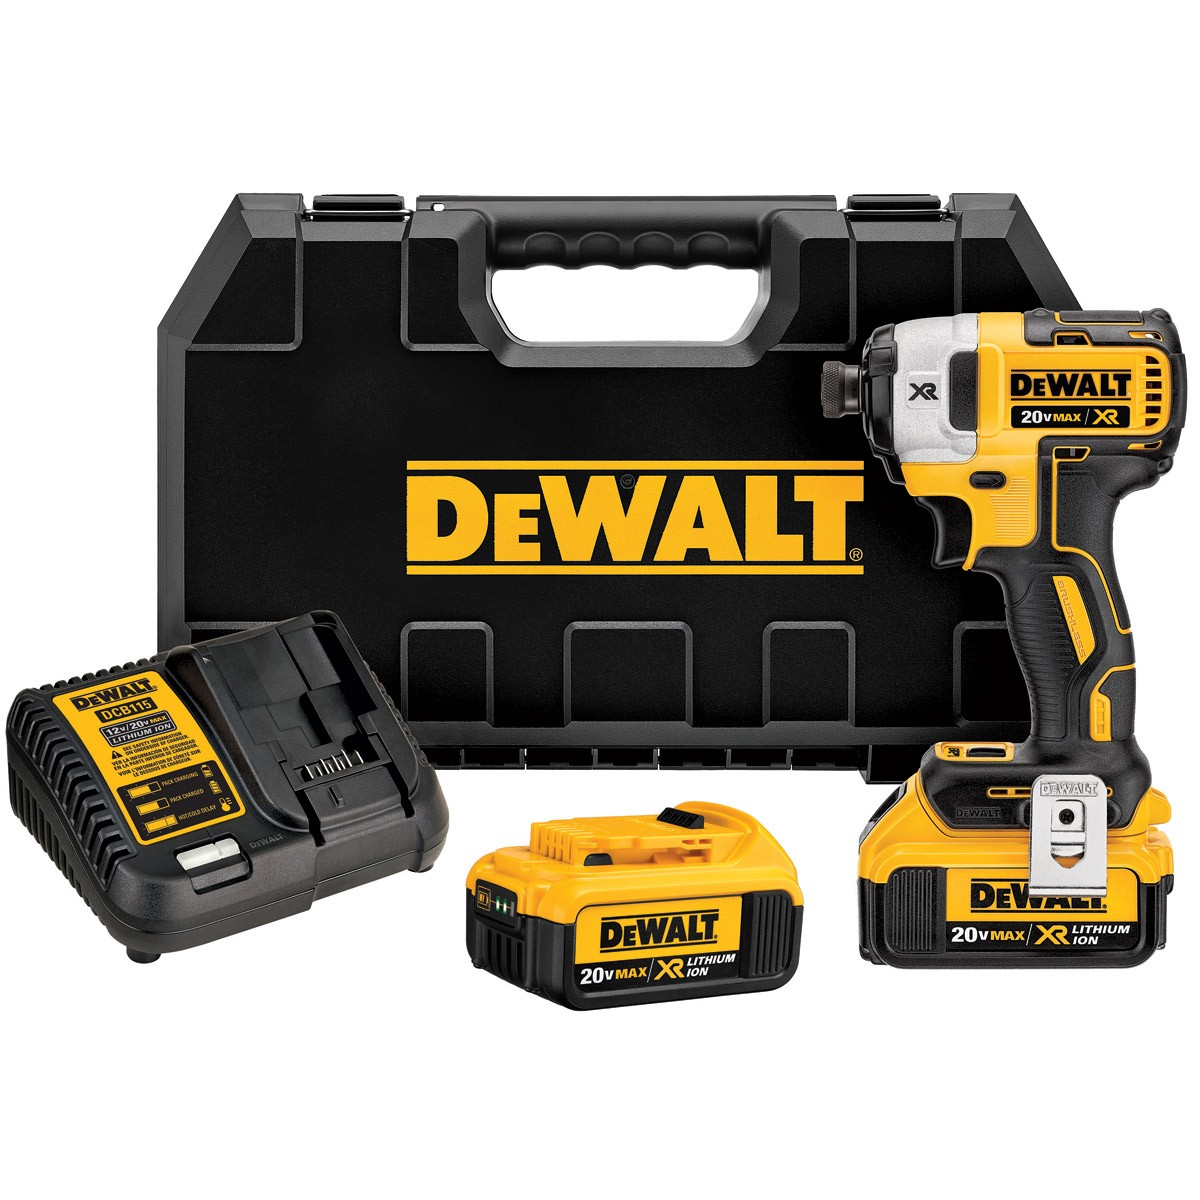 Punch DeWalt: technical specifications, manufacturer, reviews of the best models 92